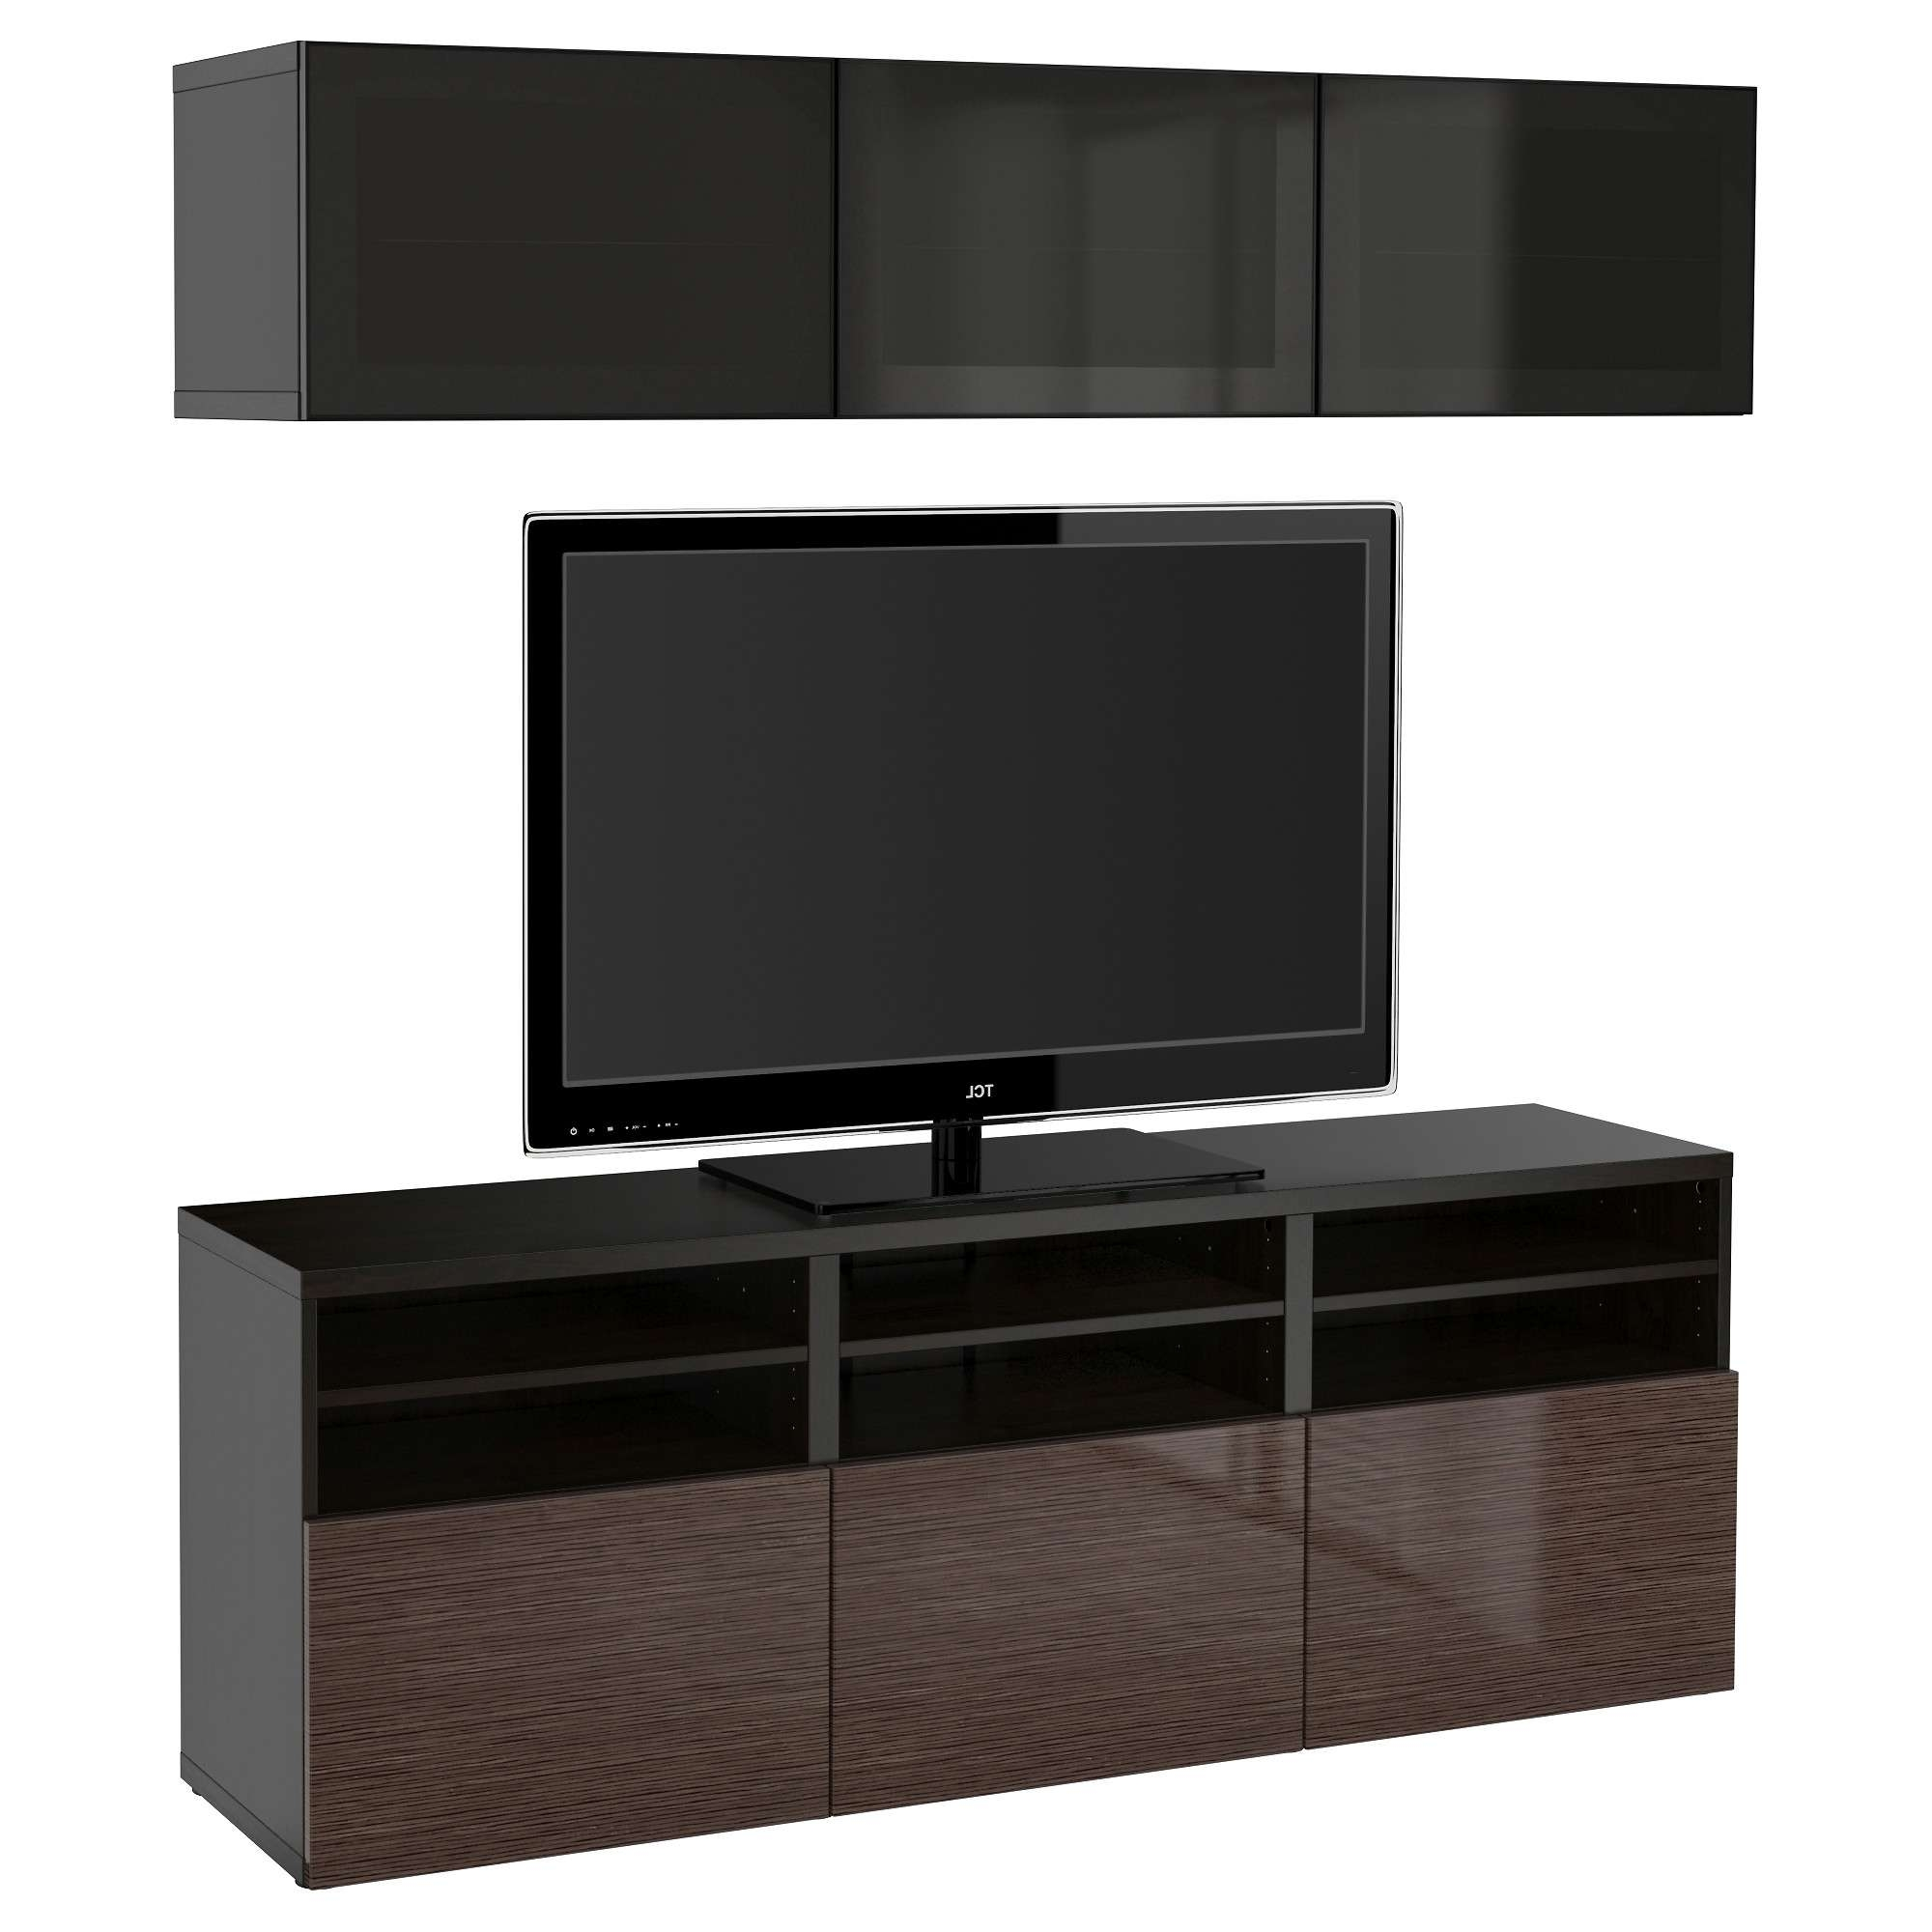 20 Inspirations Of Black Tv Cabinets With Doors